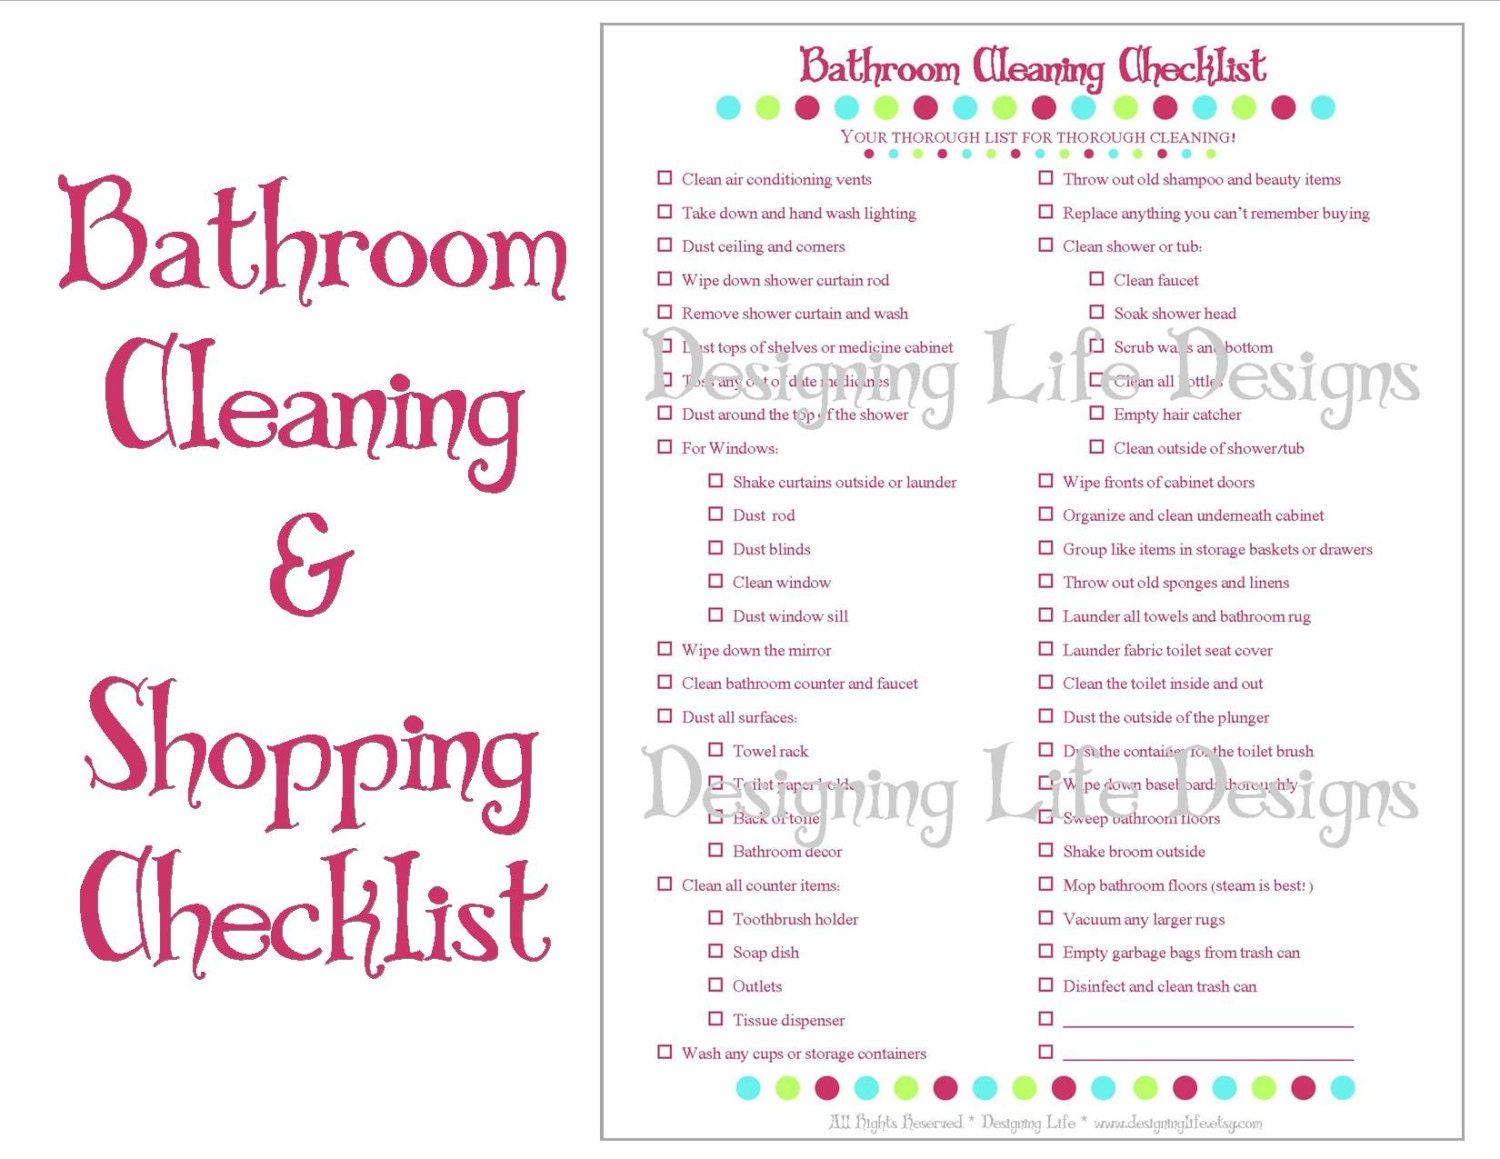 Bathroom Cleaning And Shopping Checklist Two Printable Lists